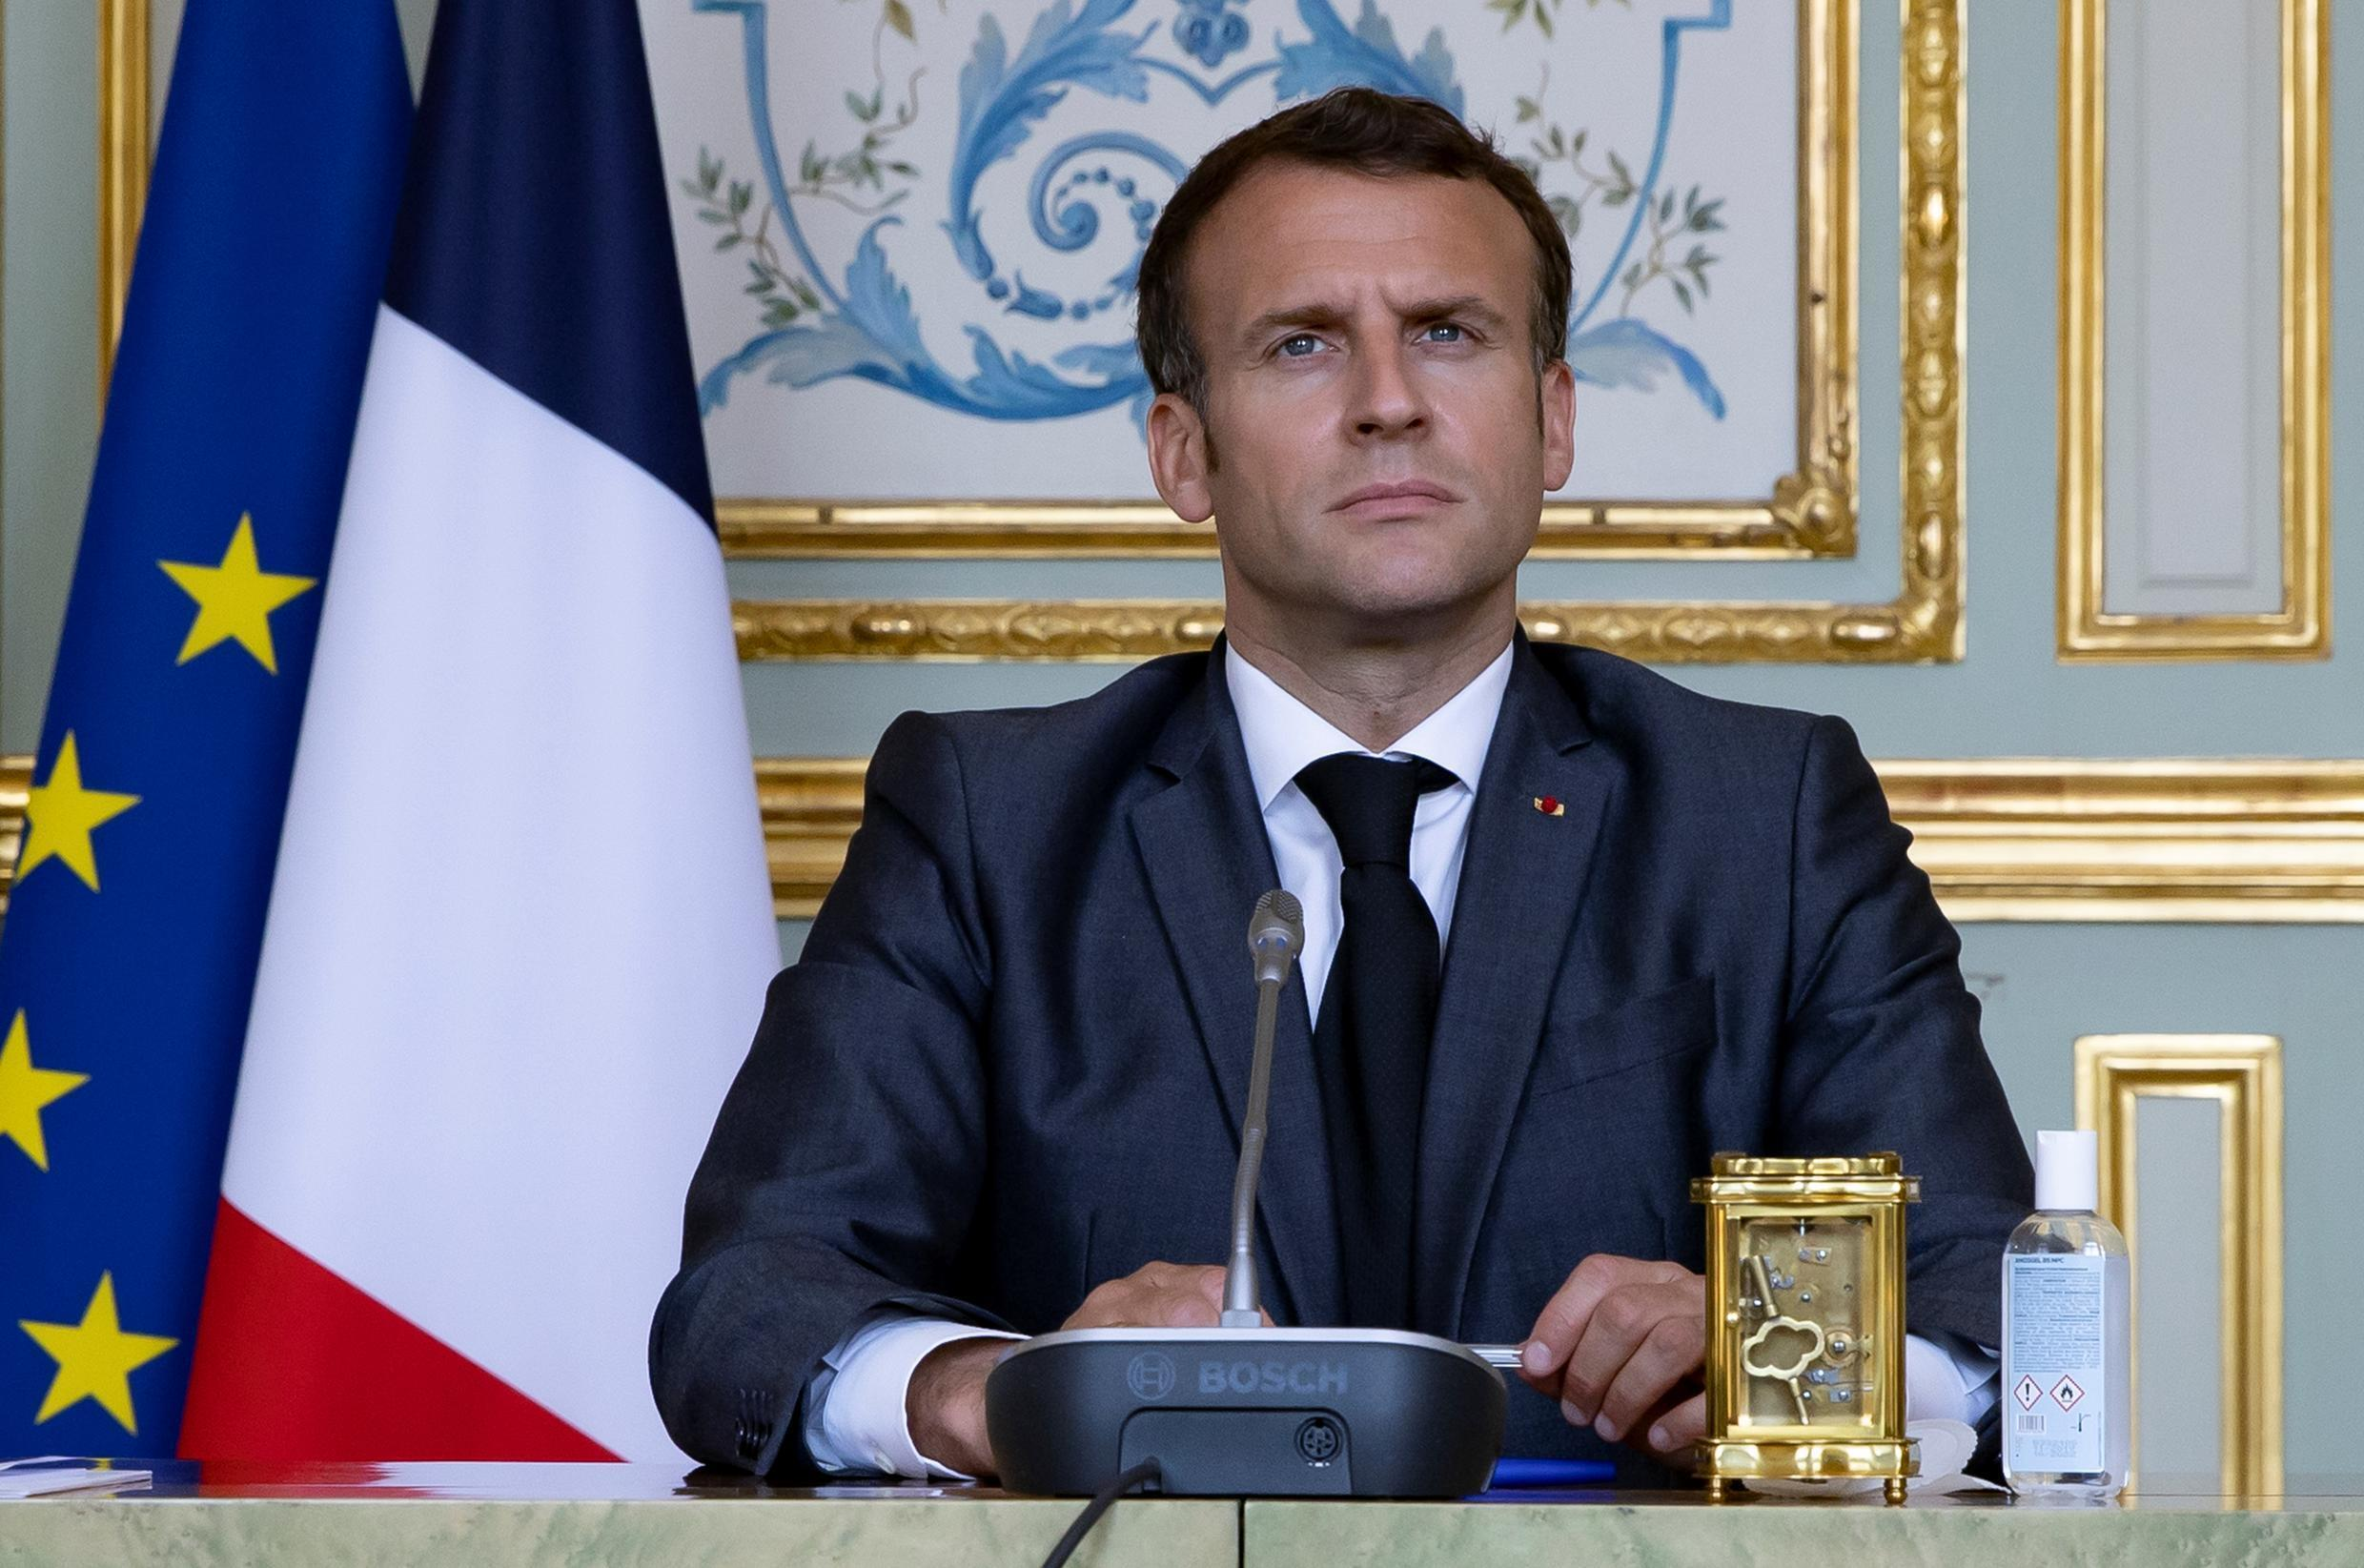 French President Emmanuel Macron delivered his full speech to the Earth Day Climate Summit, but only after a technical hiccup interrupted his remarks as they were being delivered by video conference call